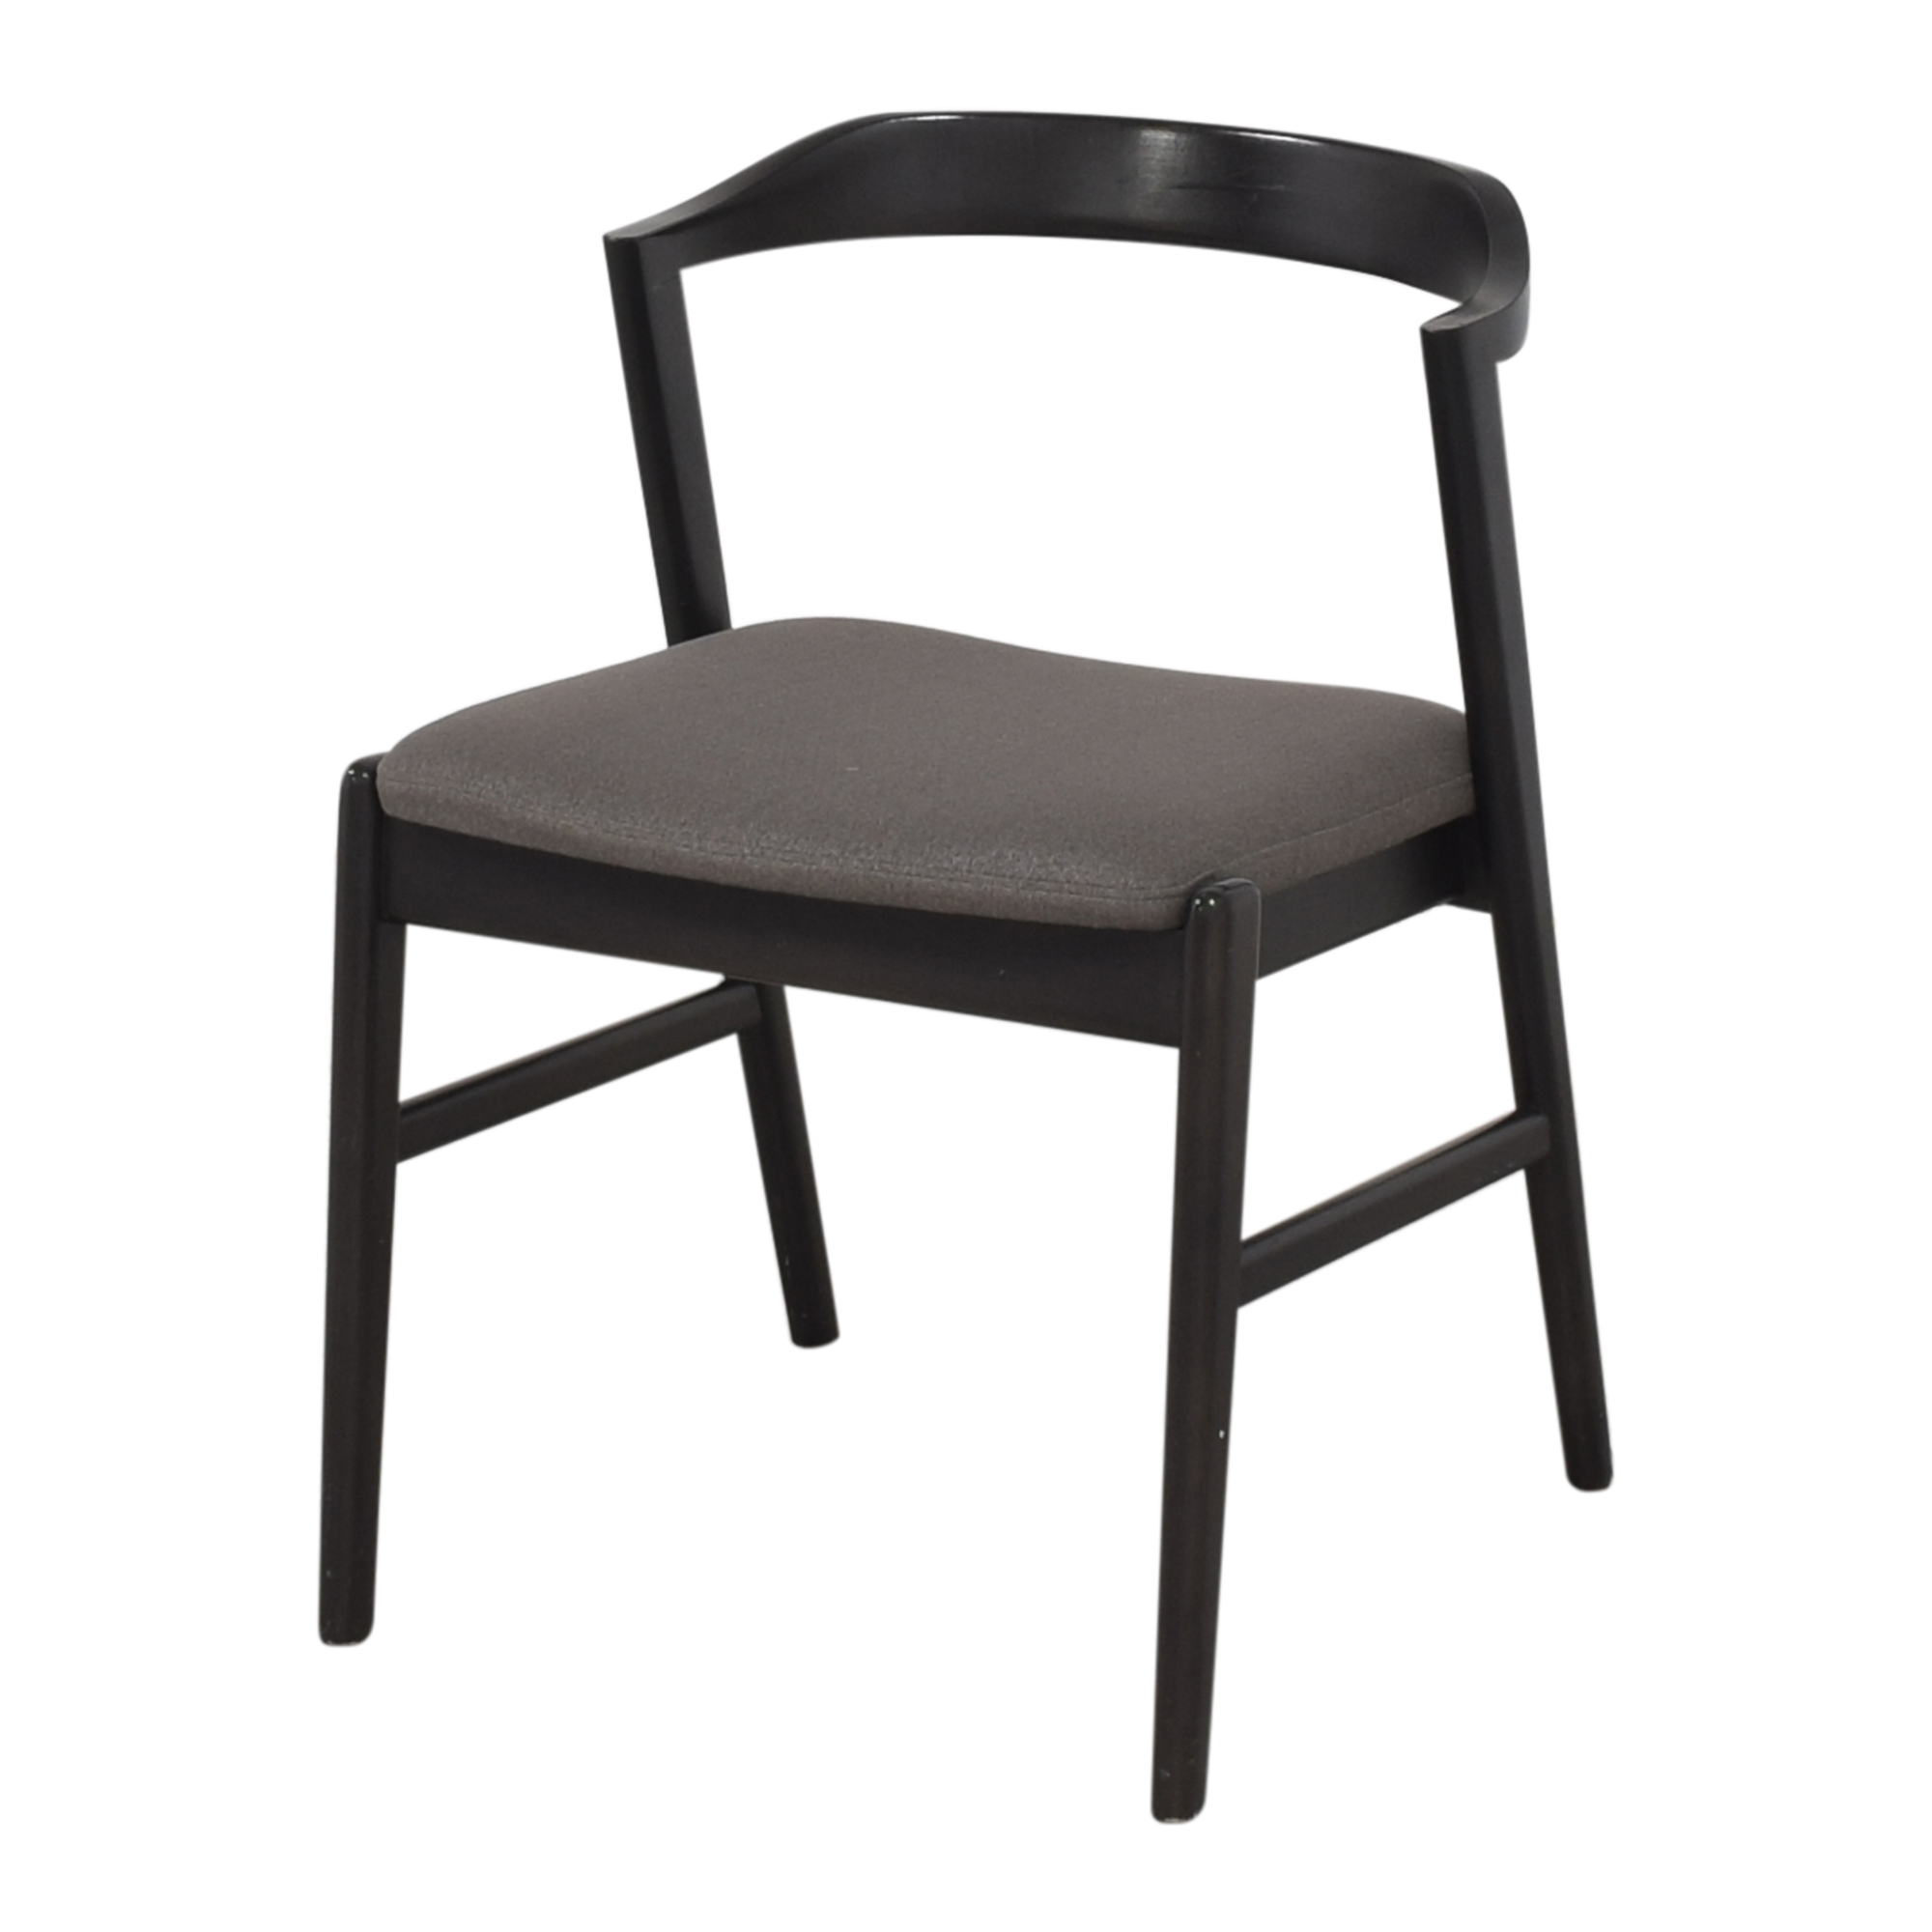 Room & Board Room & Board Jansen Dining Chairs pa